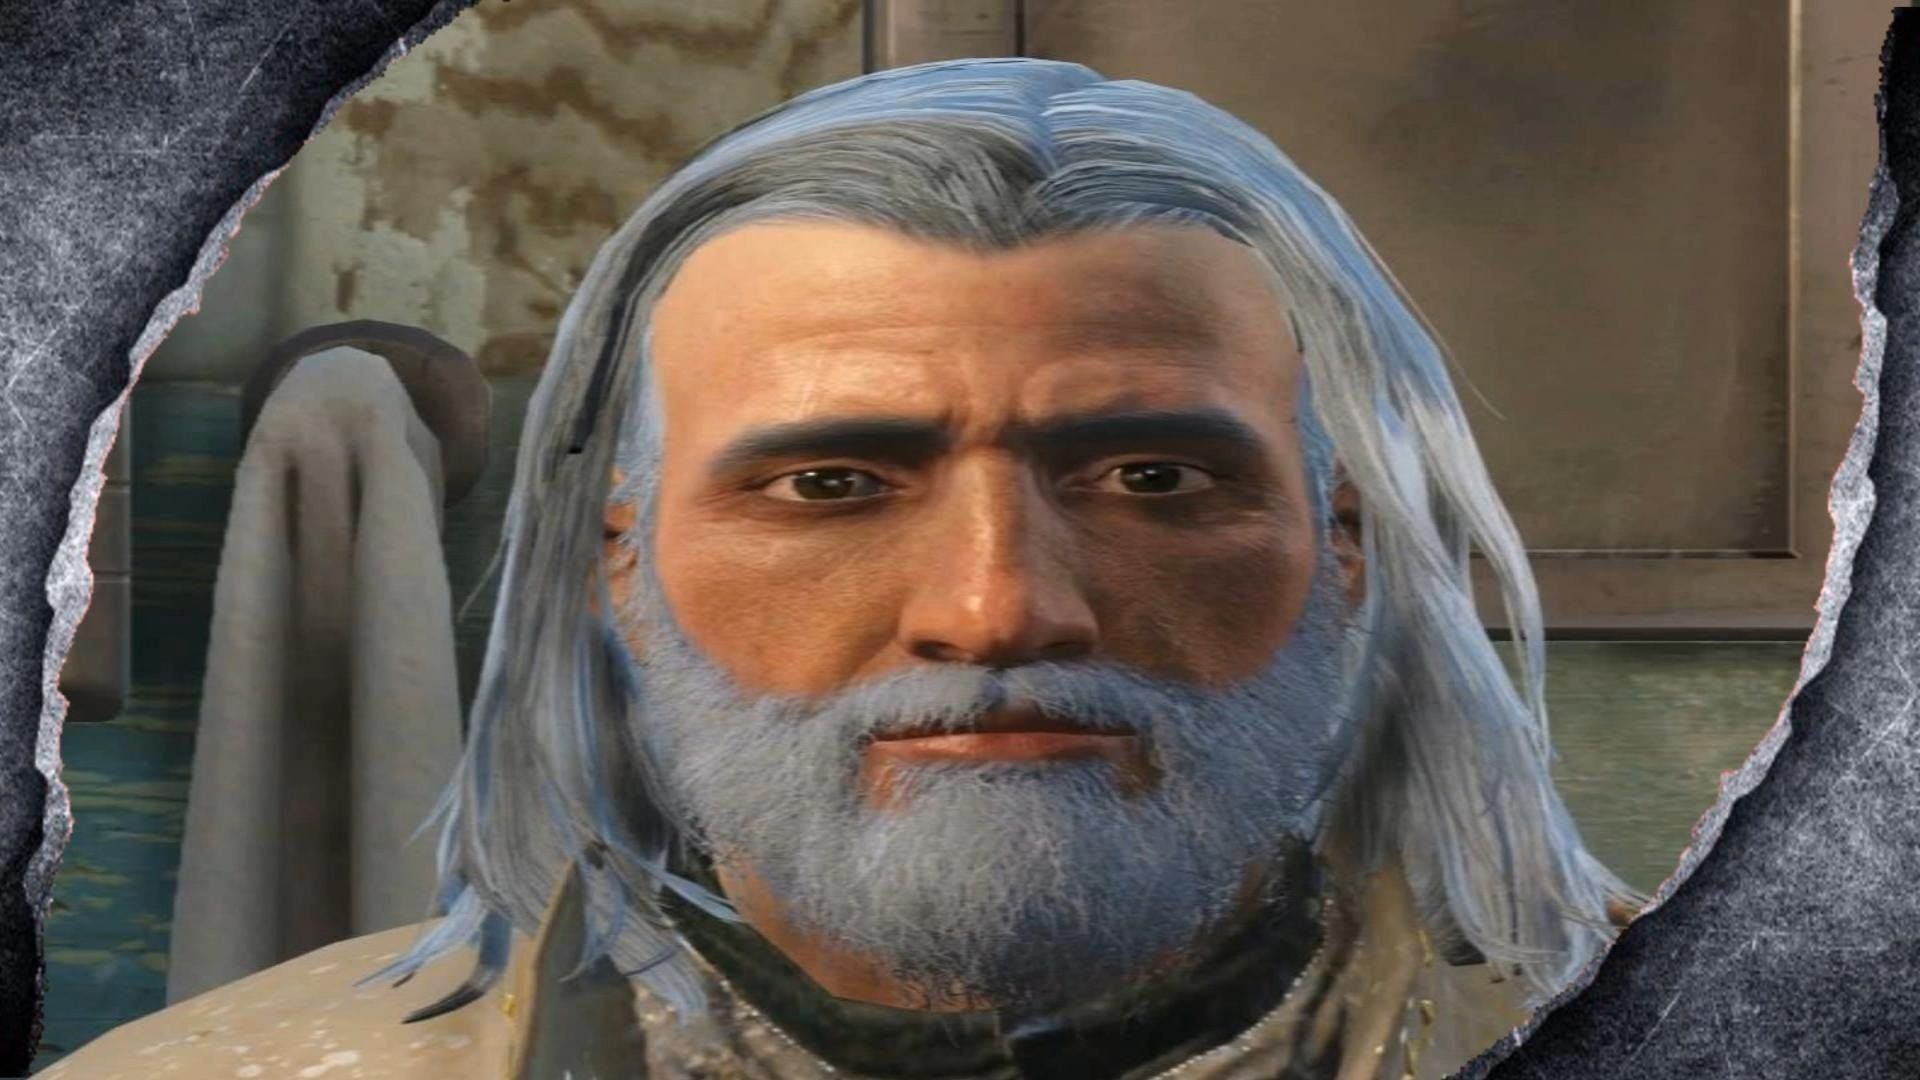 Fallout 4: More Hairstyles for Male and Female ~MOD SHOWCASE